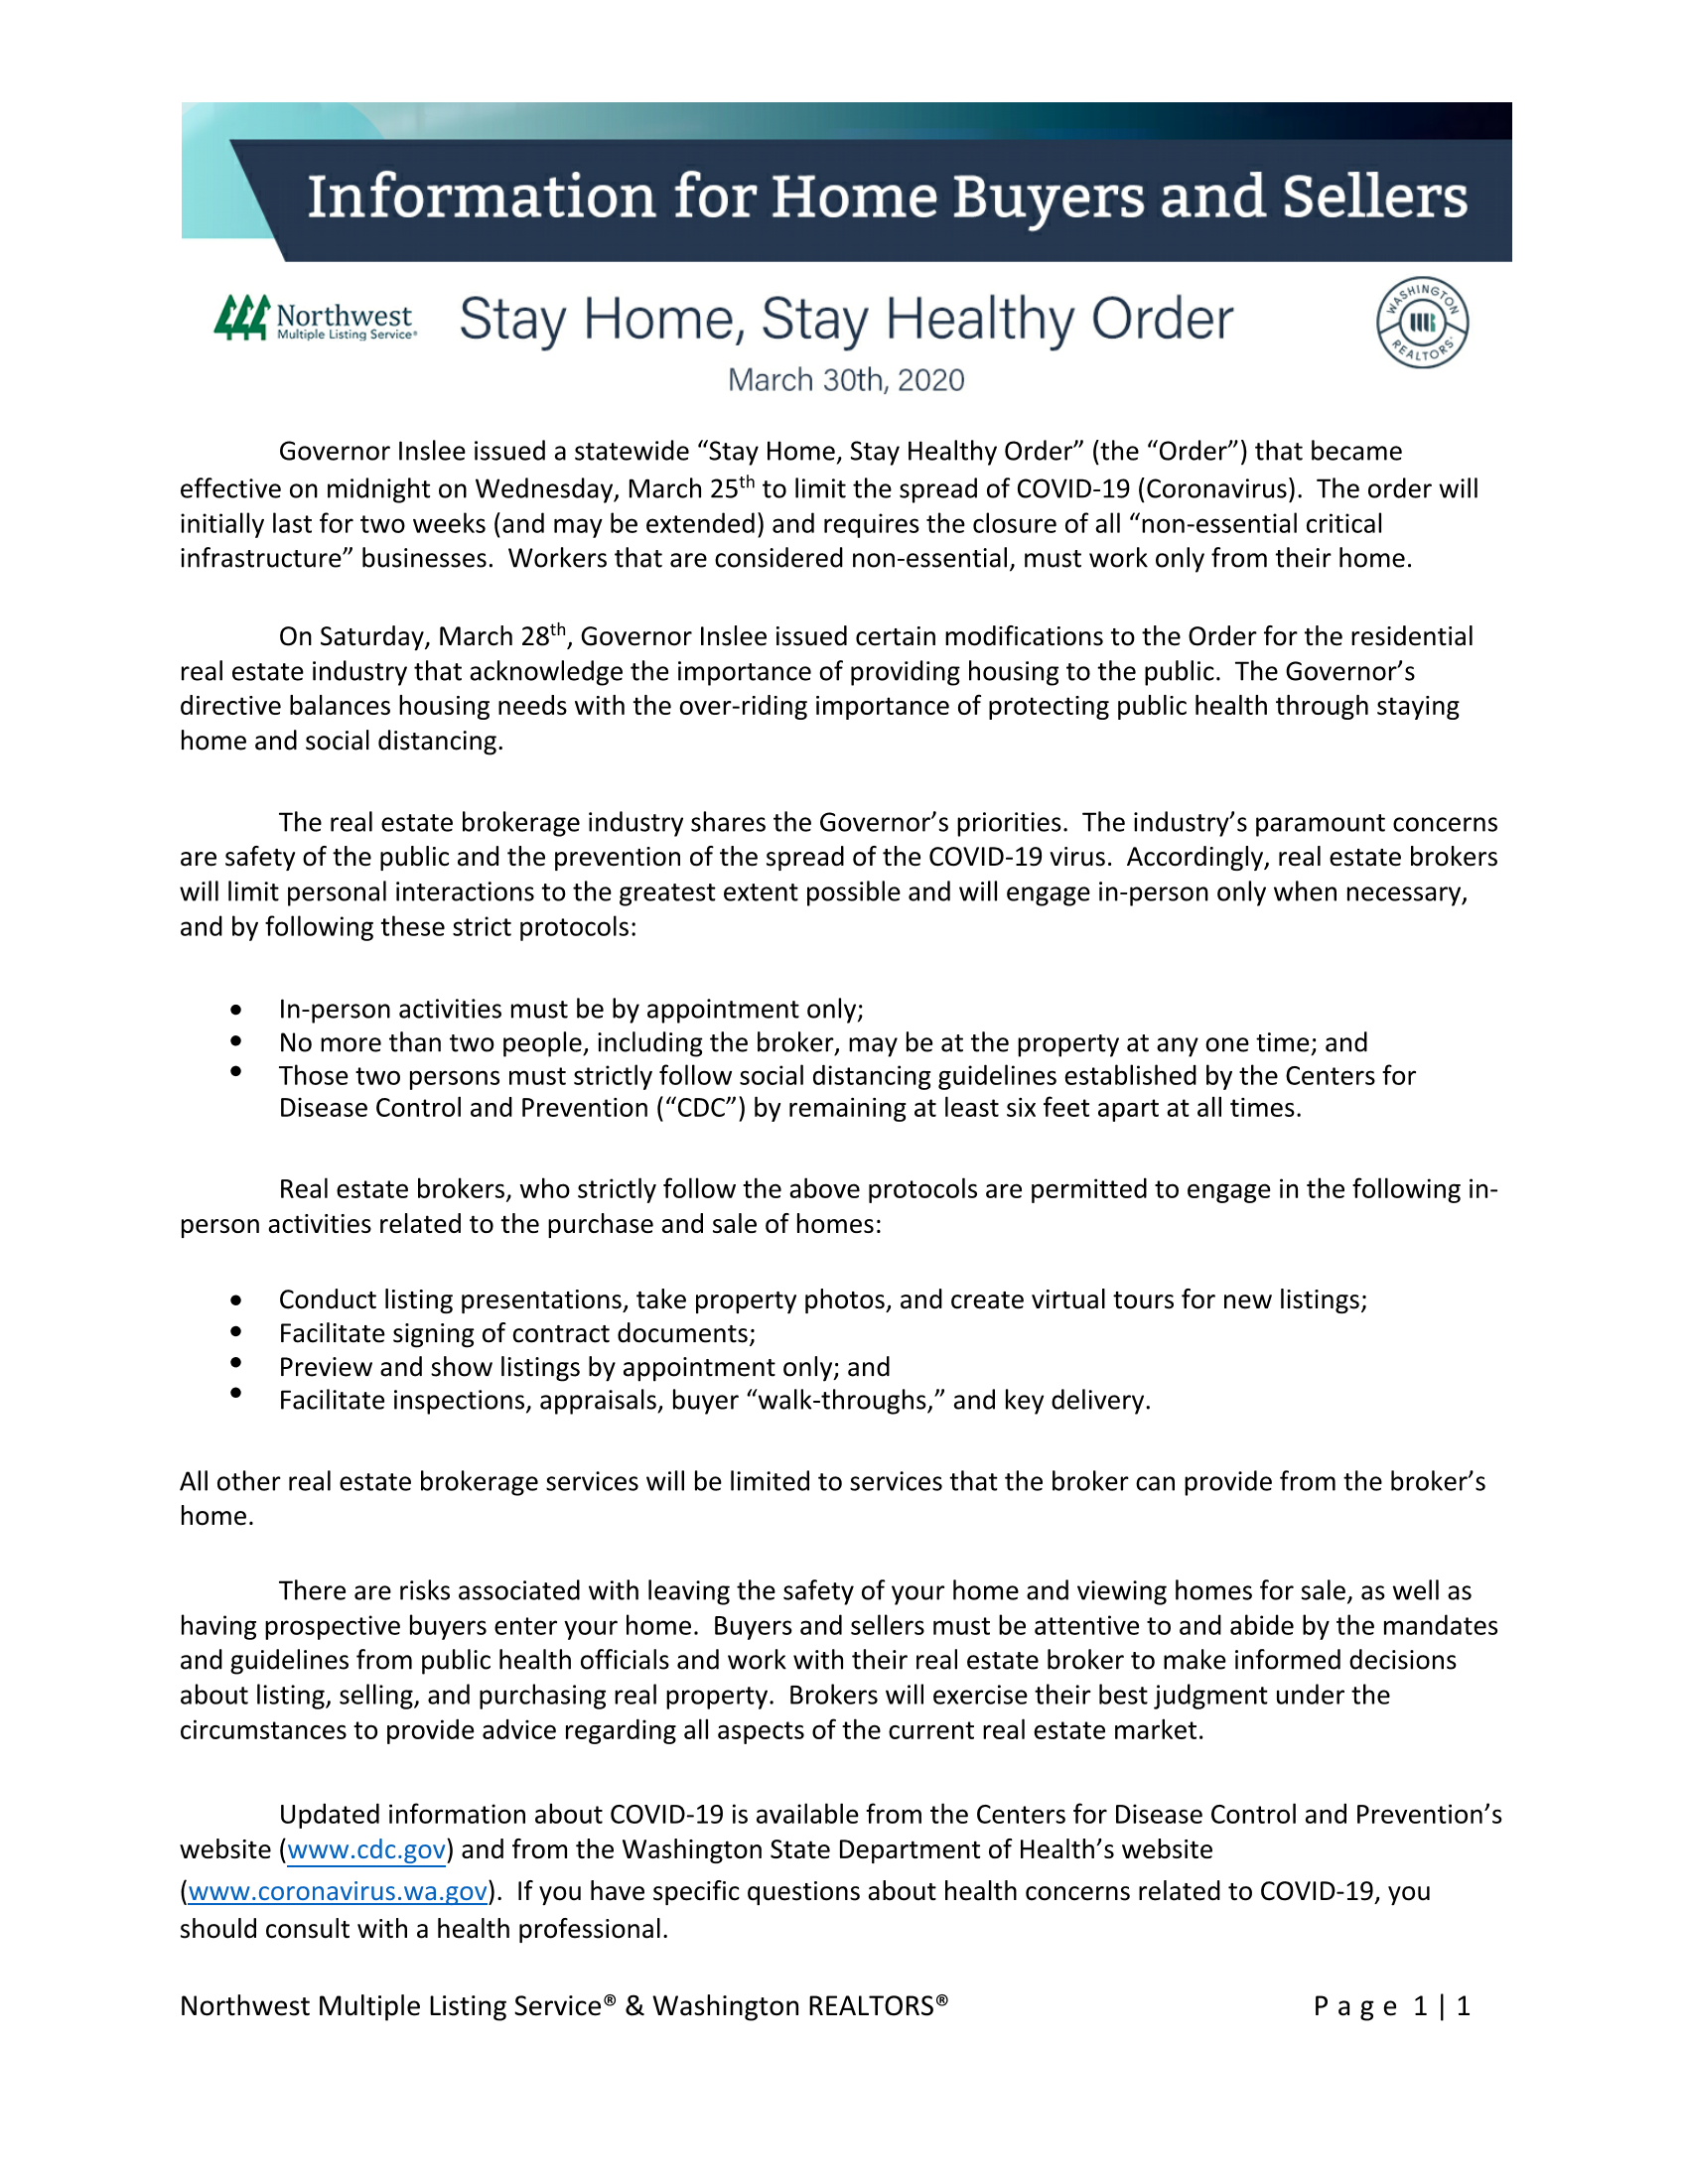 3.31.2020 Information for Home Buyers and Sellers Stay Home, Stay Healthy Order[11978]_Page_1